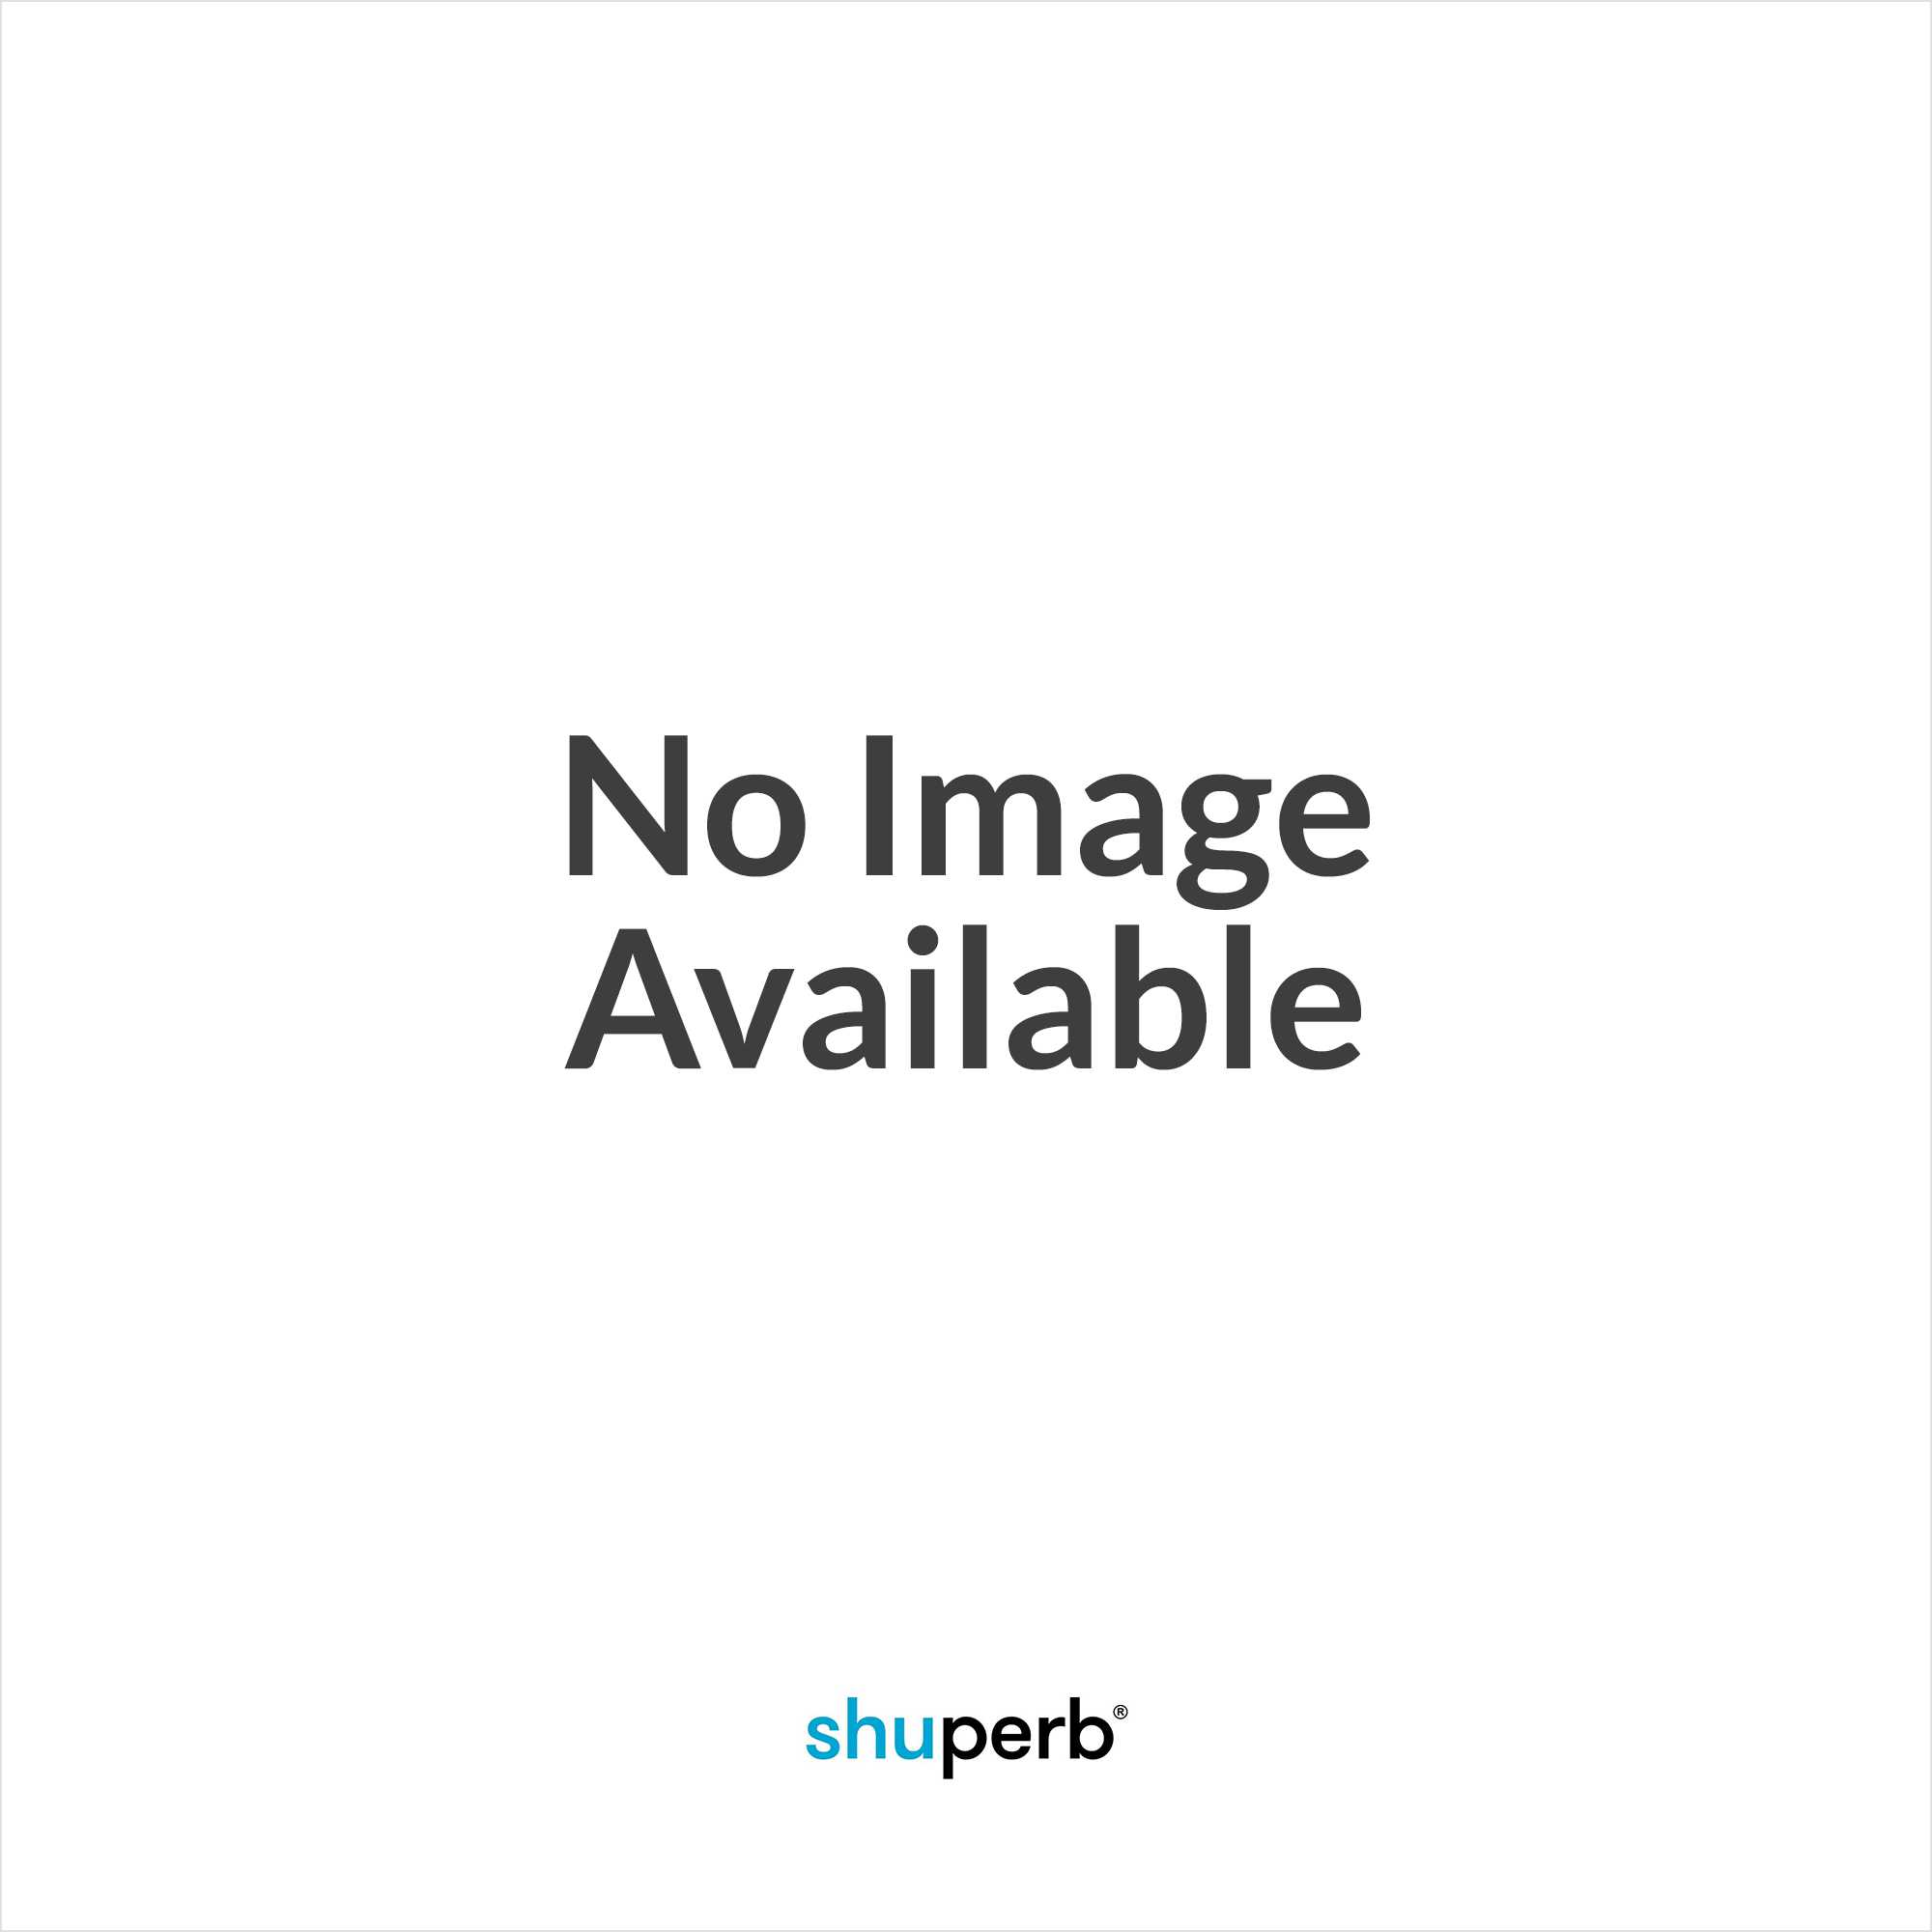 Outlet Choice Professional For Sale Chelsea Boots Suede In Black Suede - Black Silver Street London Outlet Footlocker Finishline FouIX